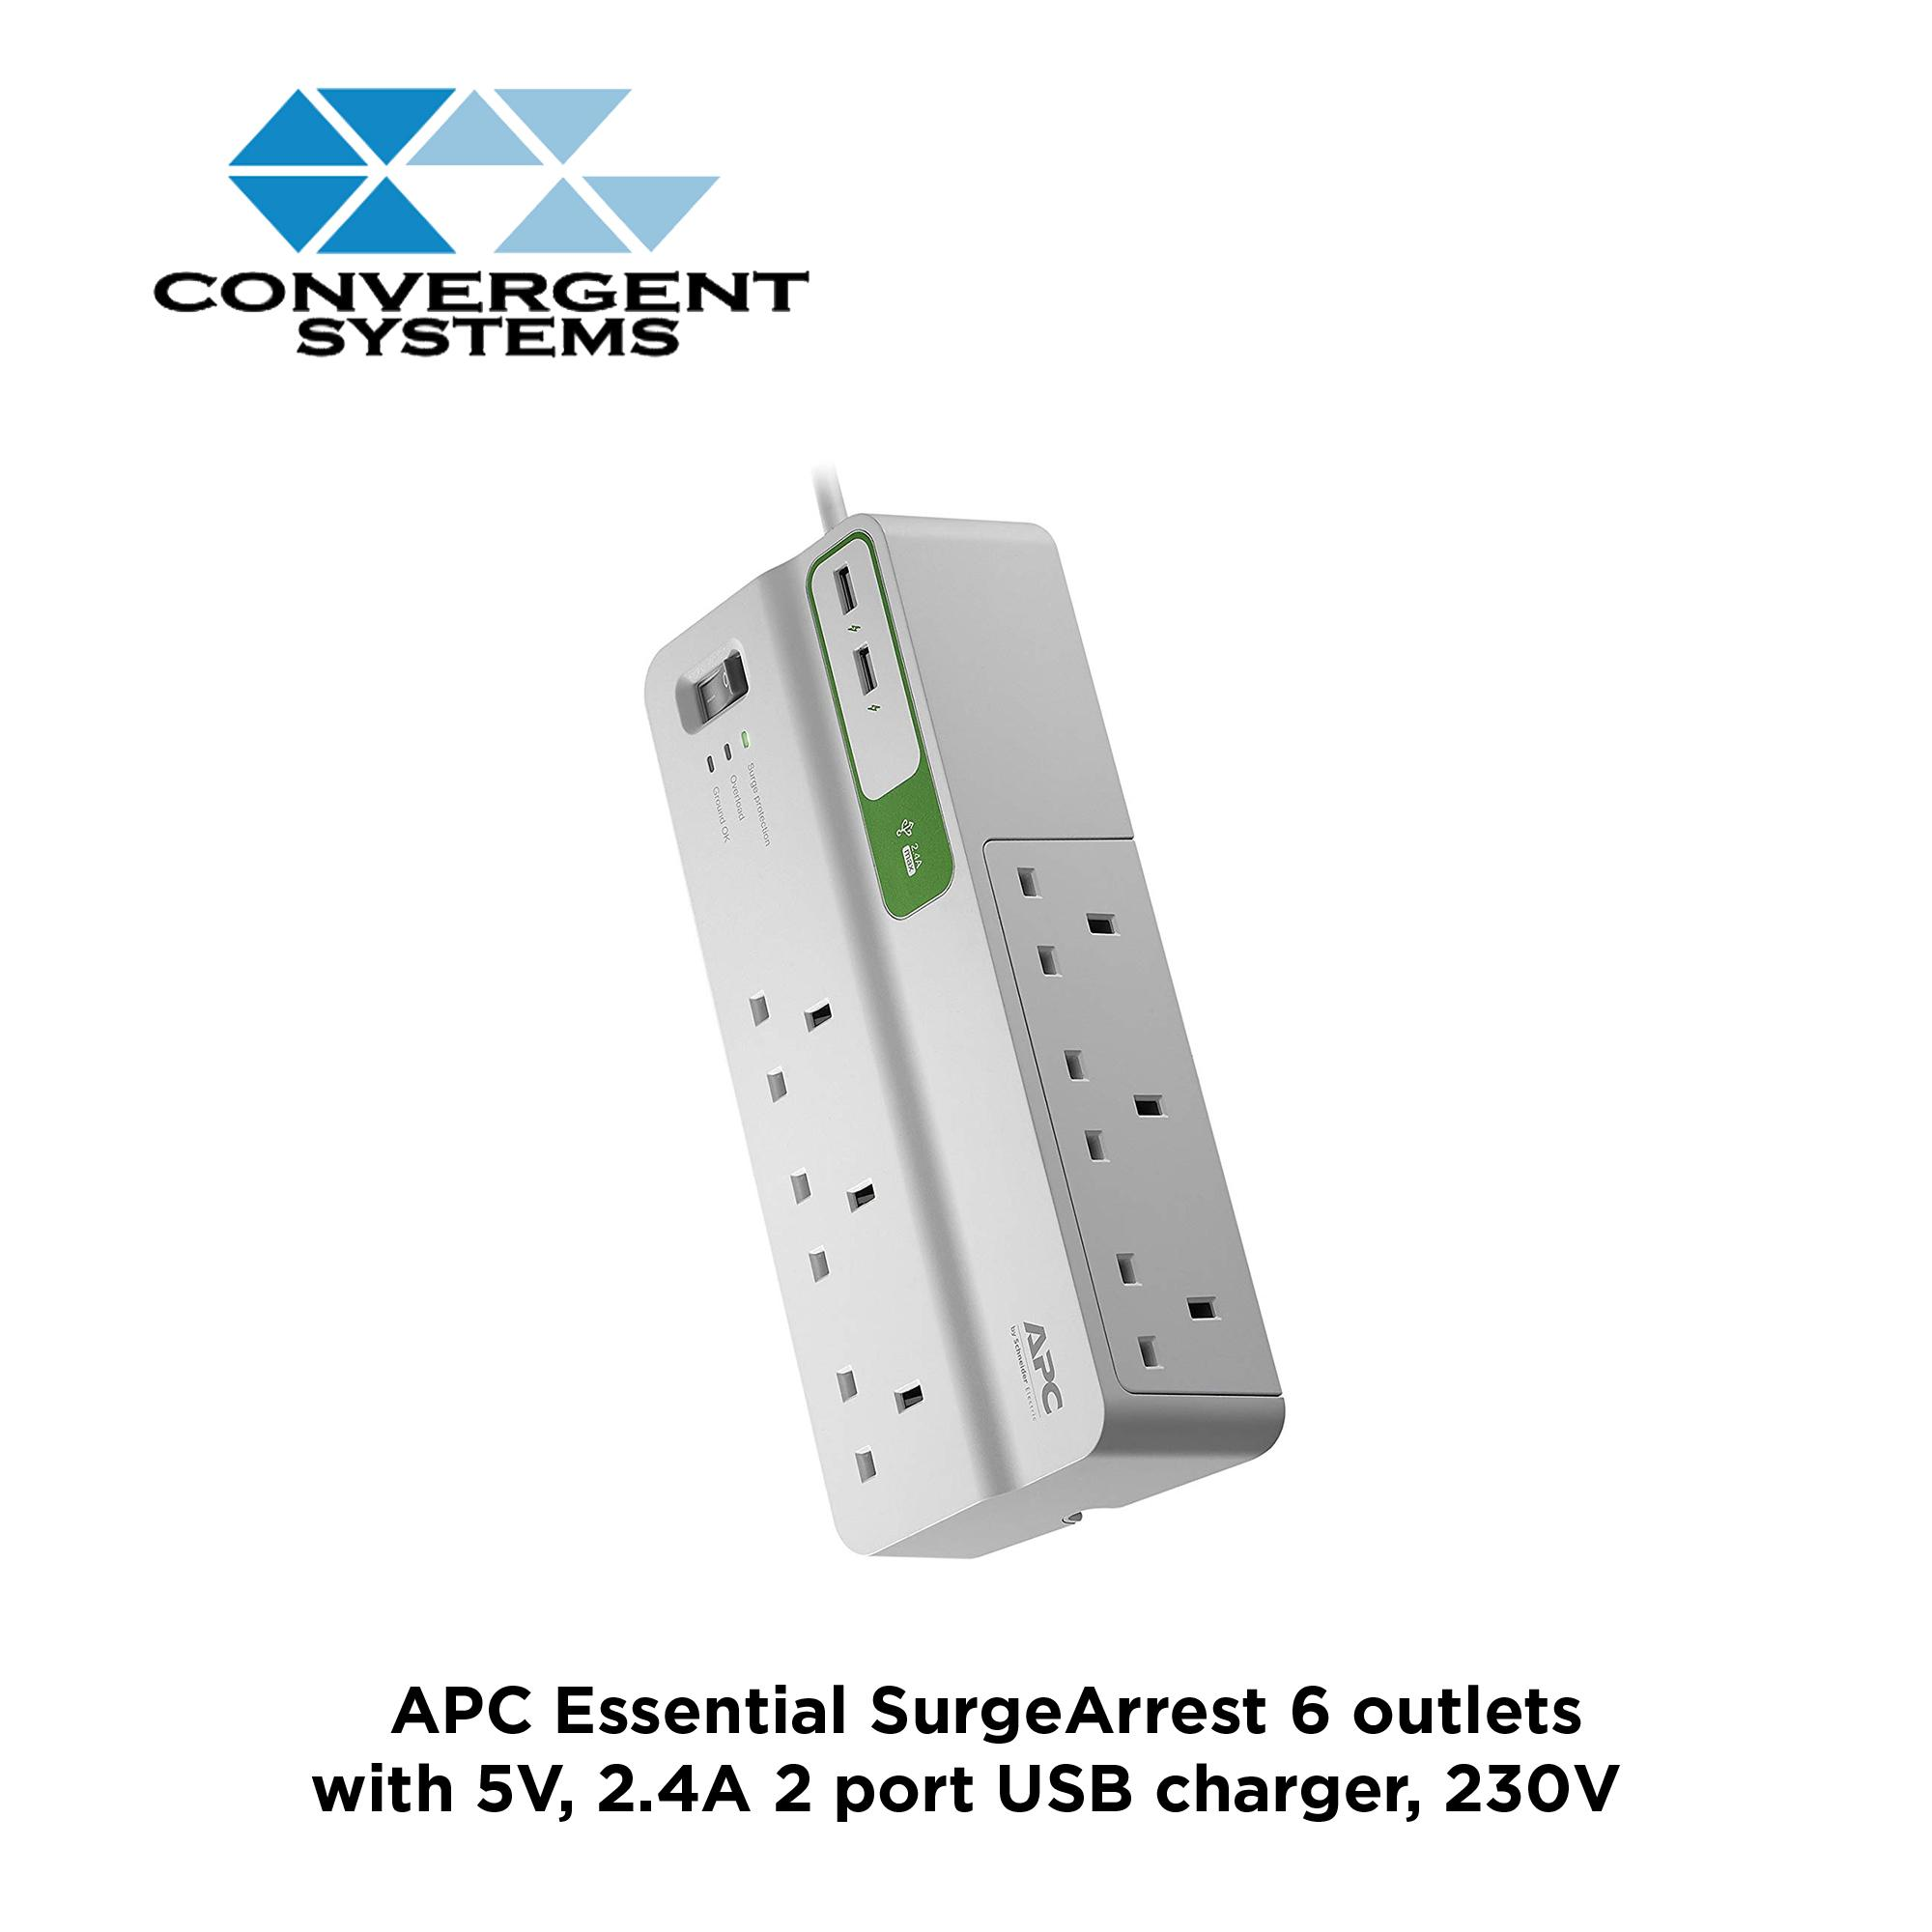 APC Essential SurgeArrest 6 outlets with 5V, 2.4A 2 port USB charger, 230V UK